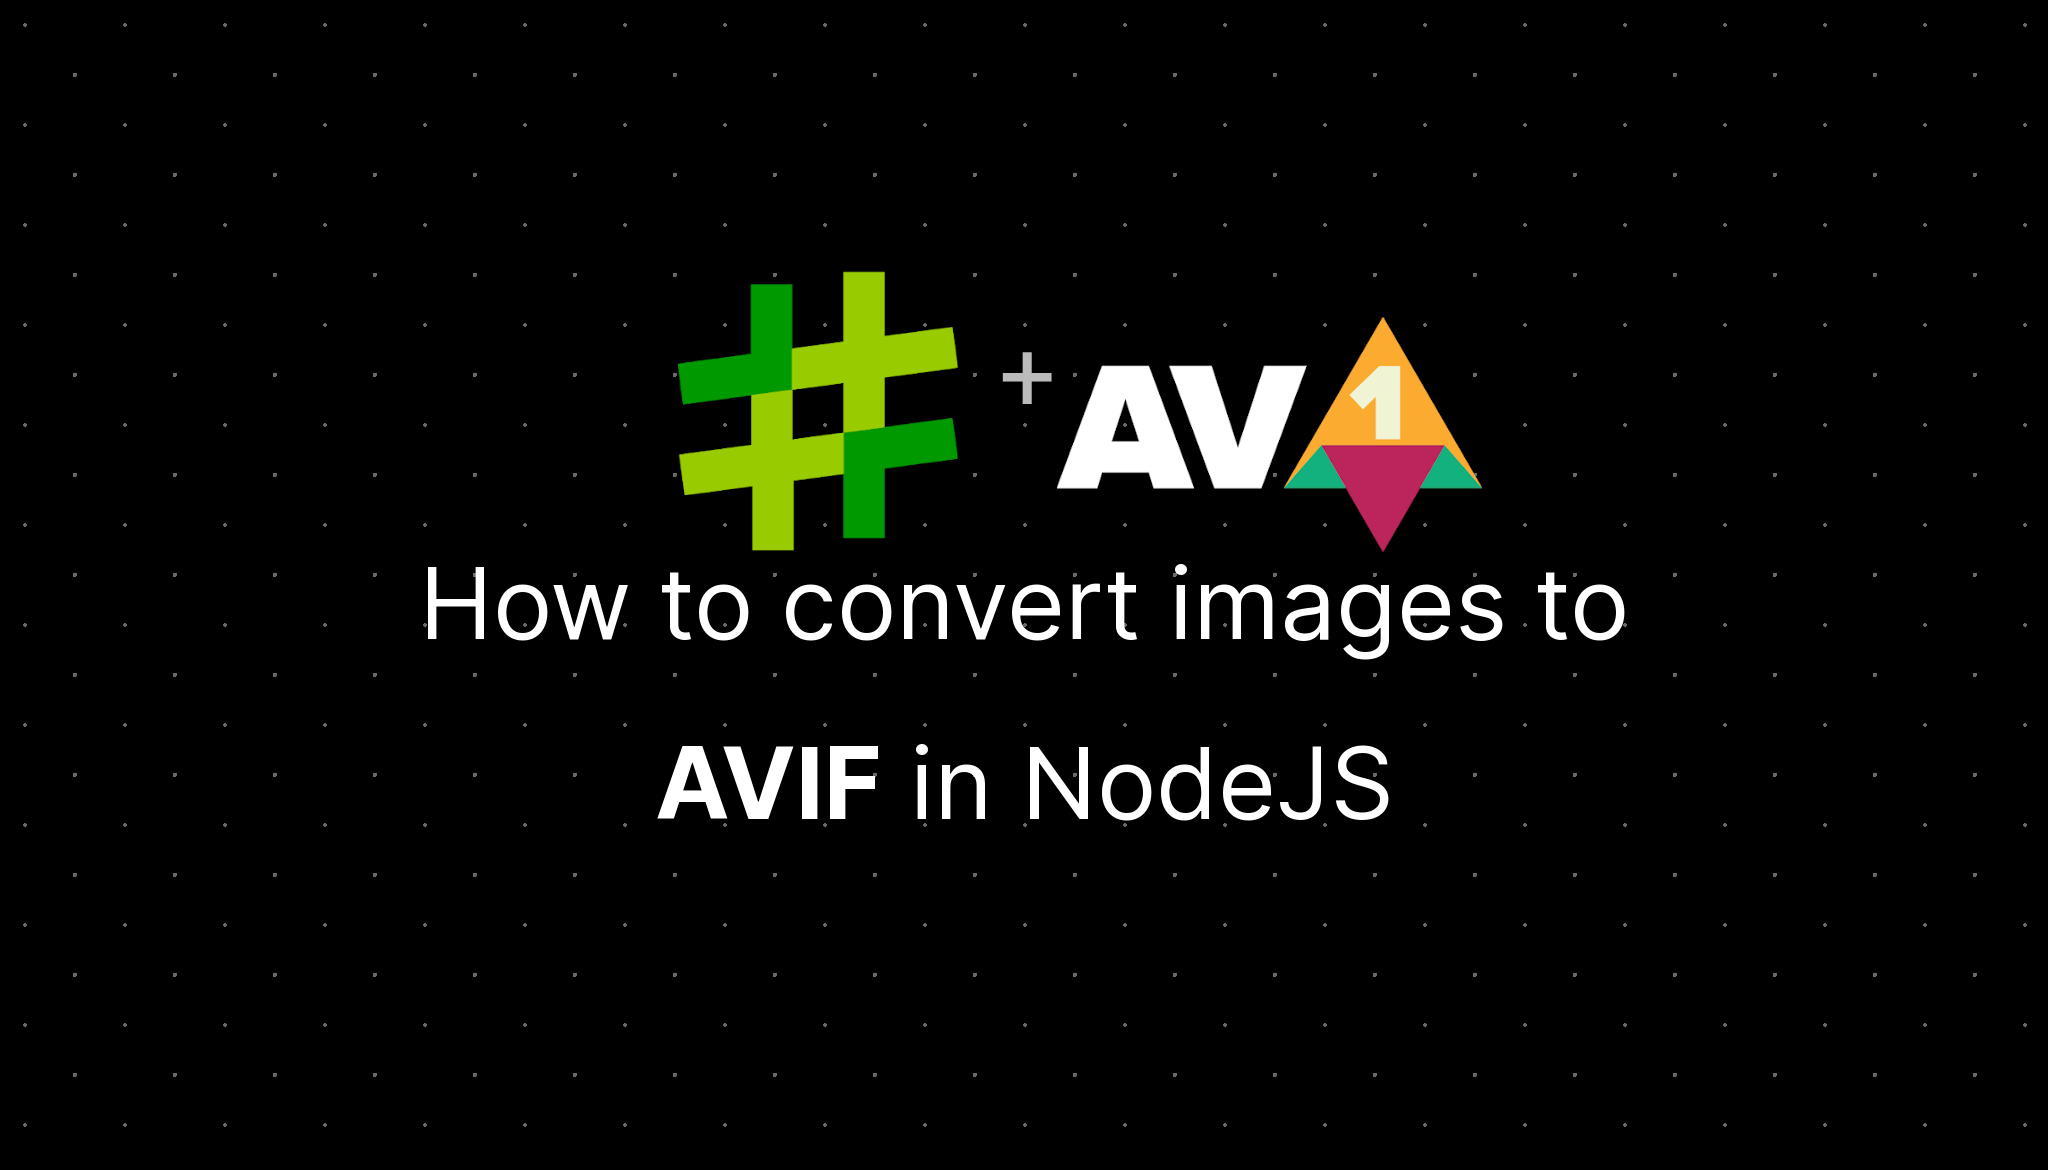 How to convert images to AVIF in NodeJS